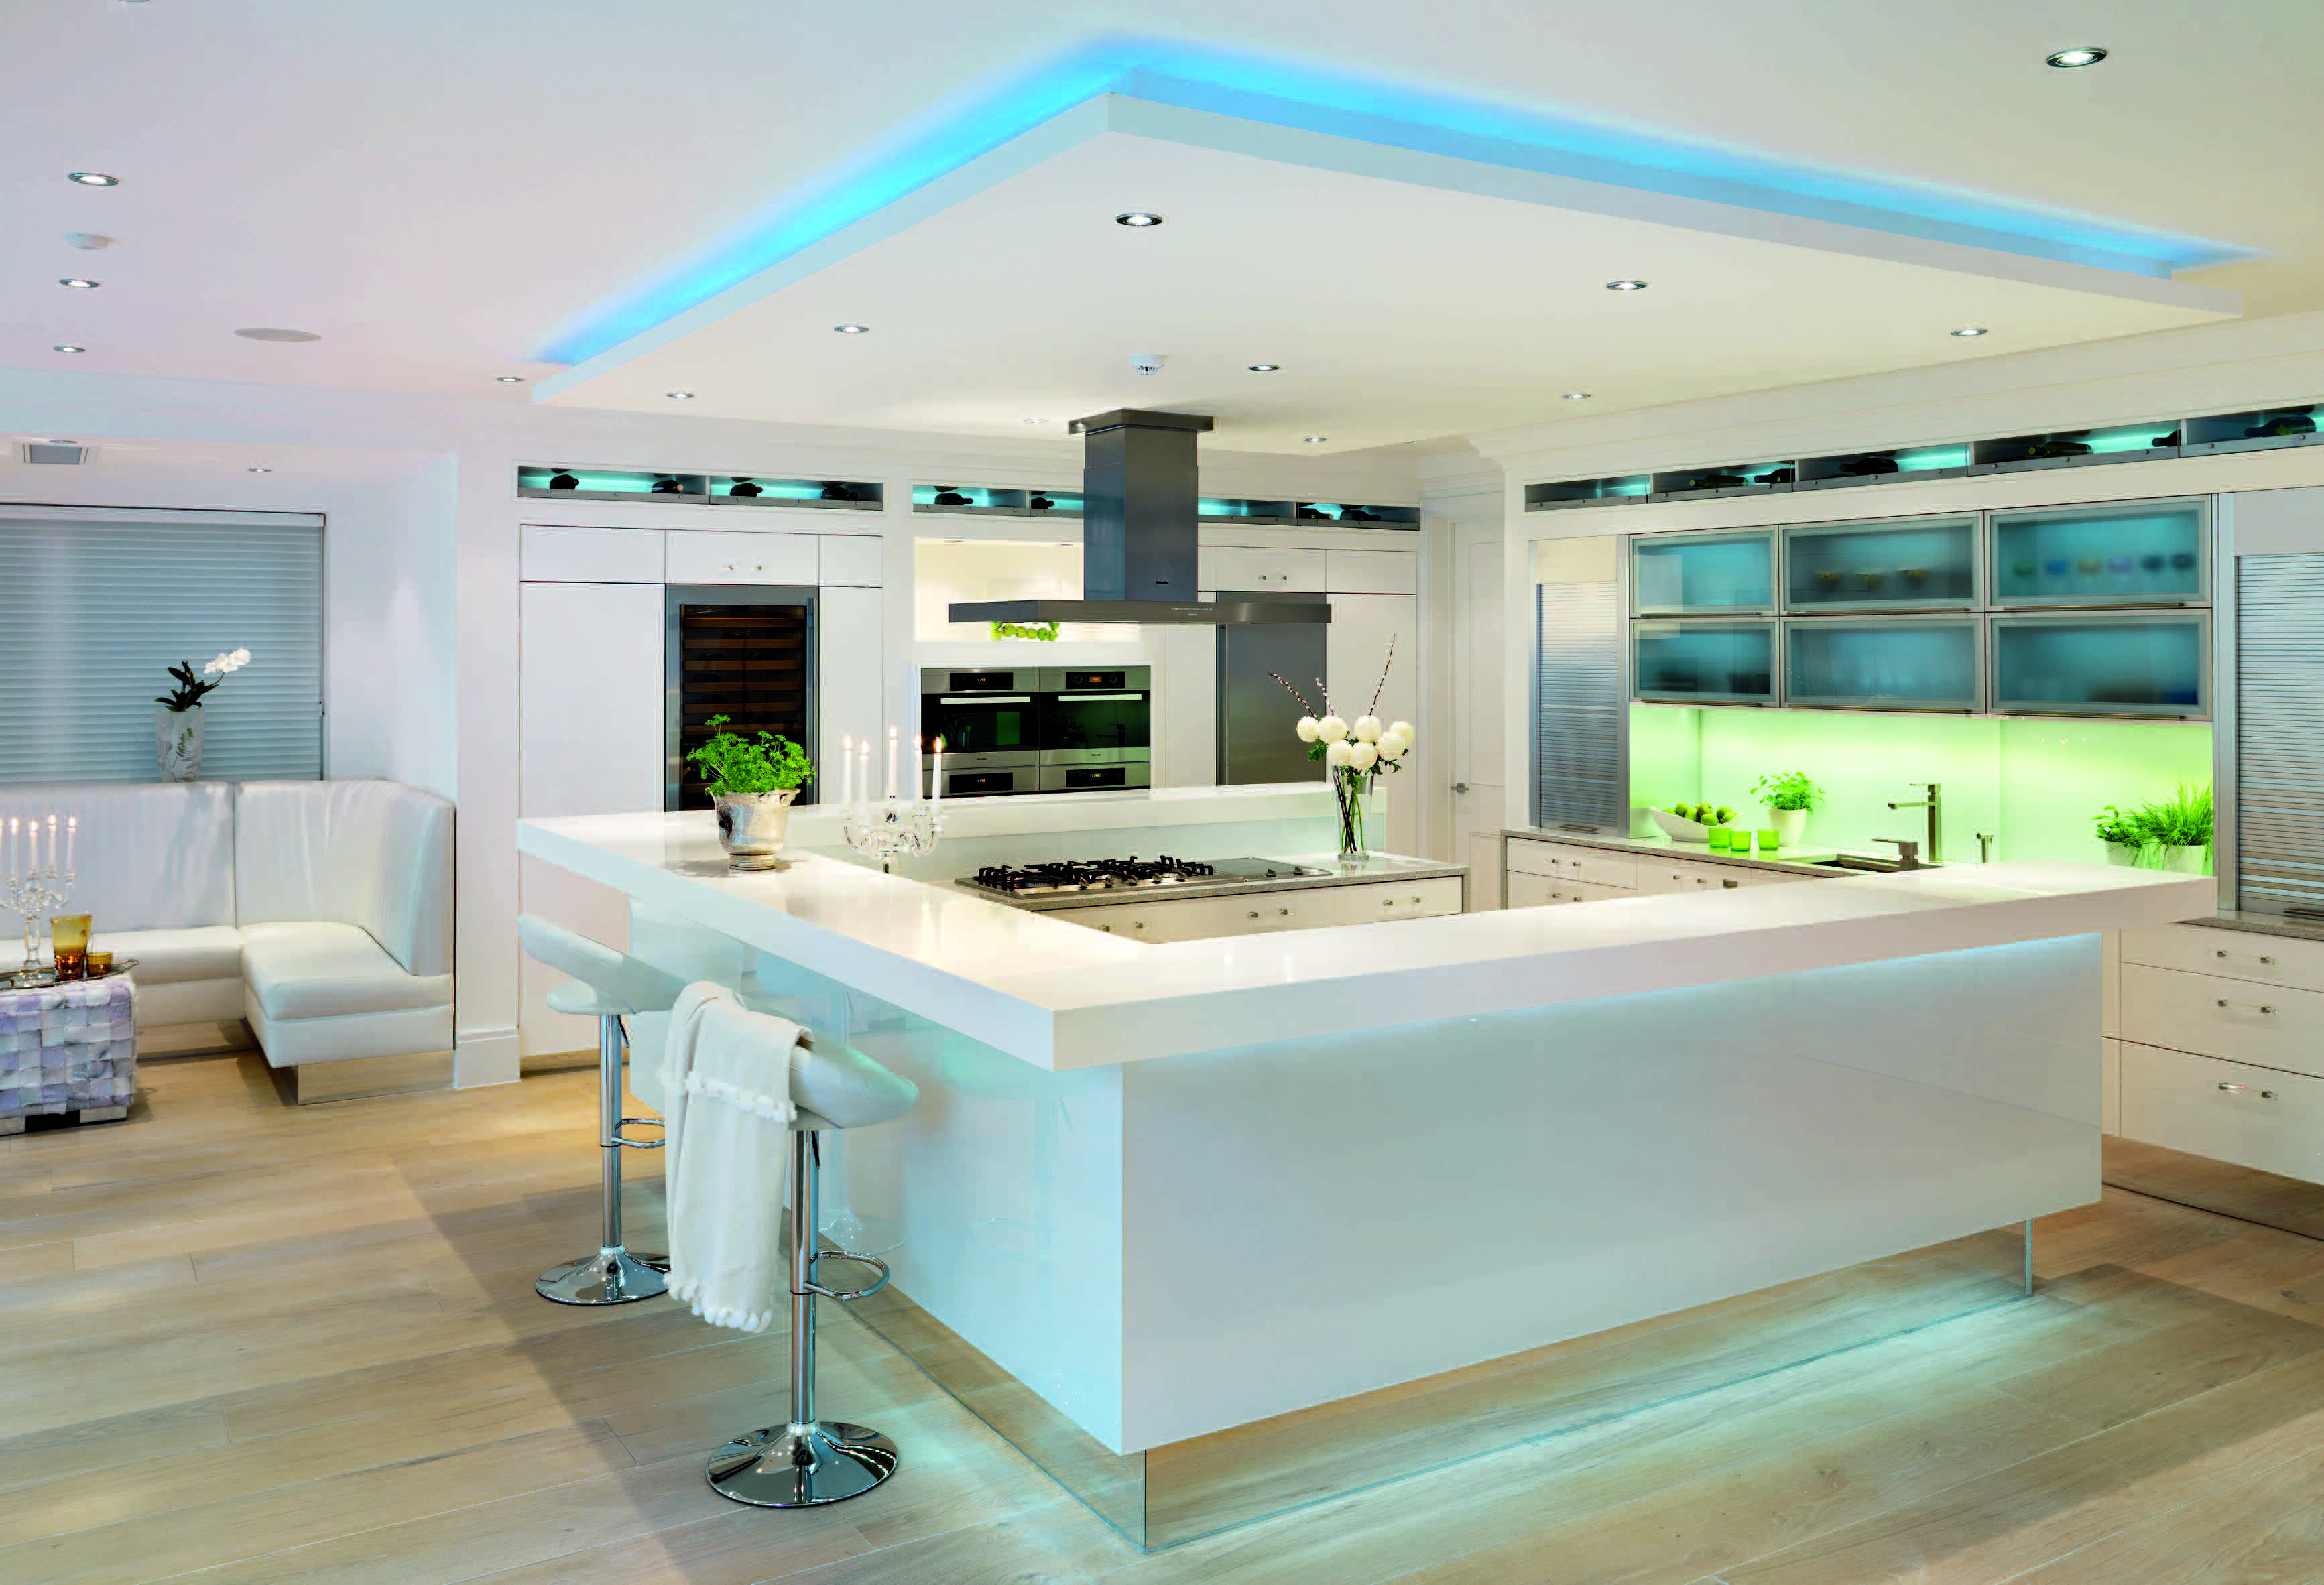 Mirrored Kitchen Cabinets. Stunning Mirrored Kitchen Cabinets With ...